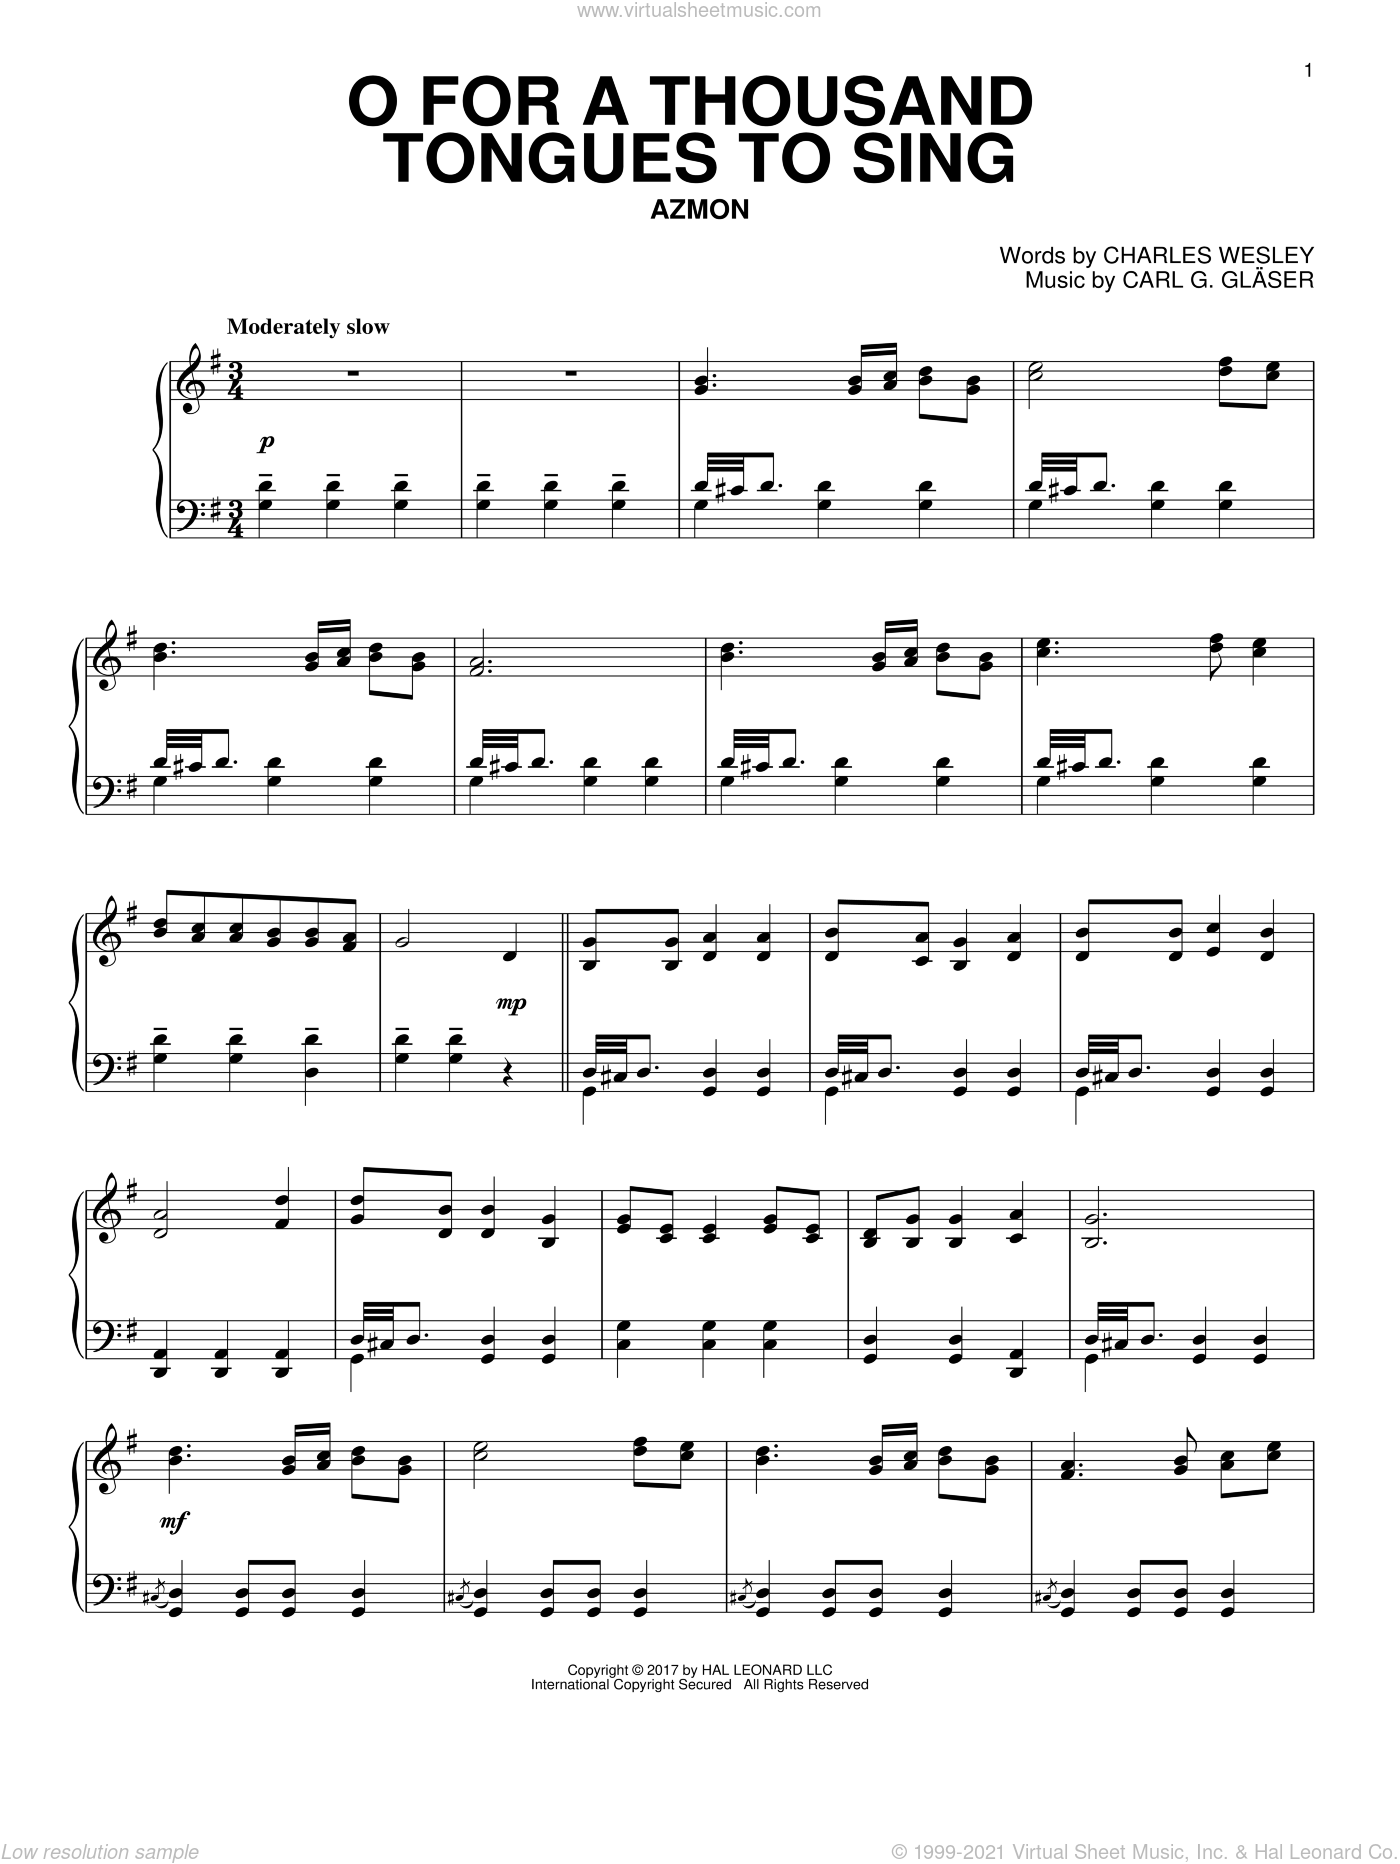 O For A Thousand Tongues To Sing sheet music for piano solo by Charles Wesley, Carl G. Glaser and Lowell Mason, intermediate skill level